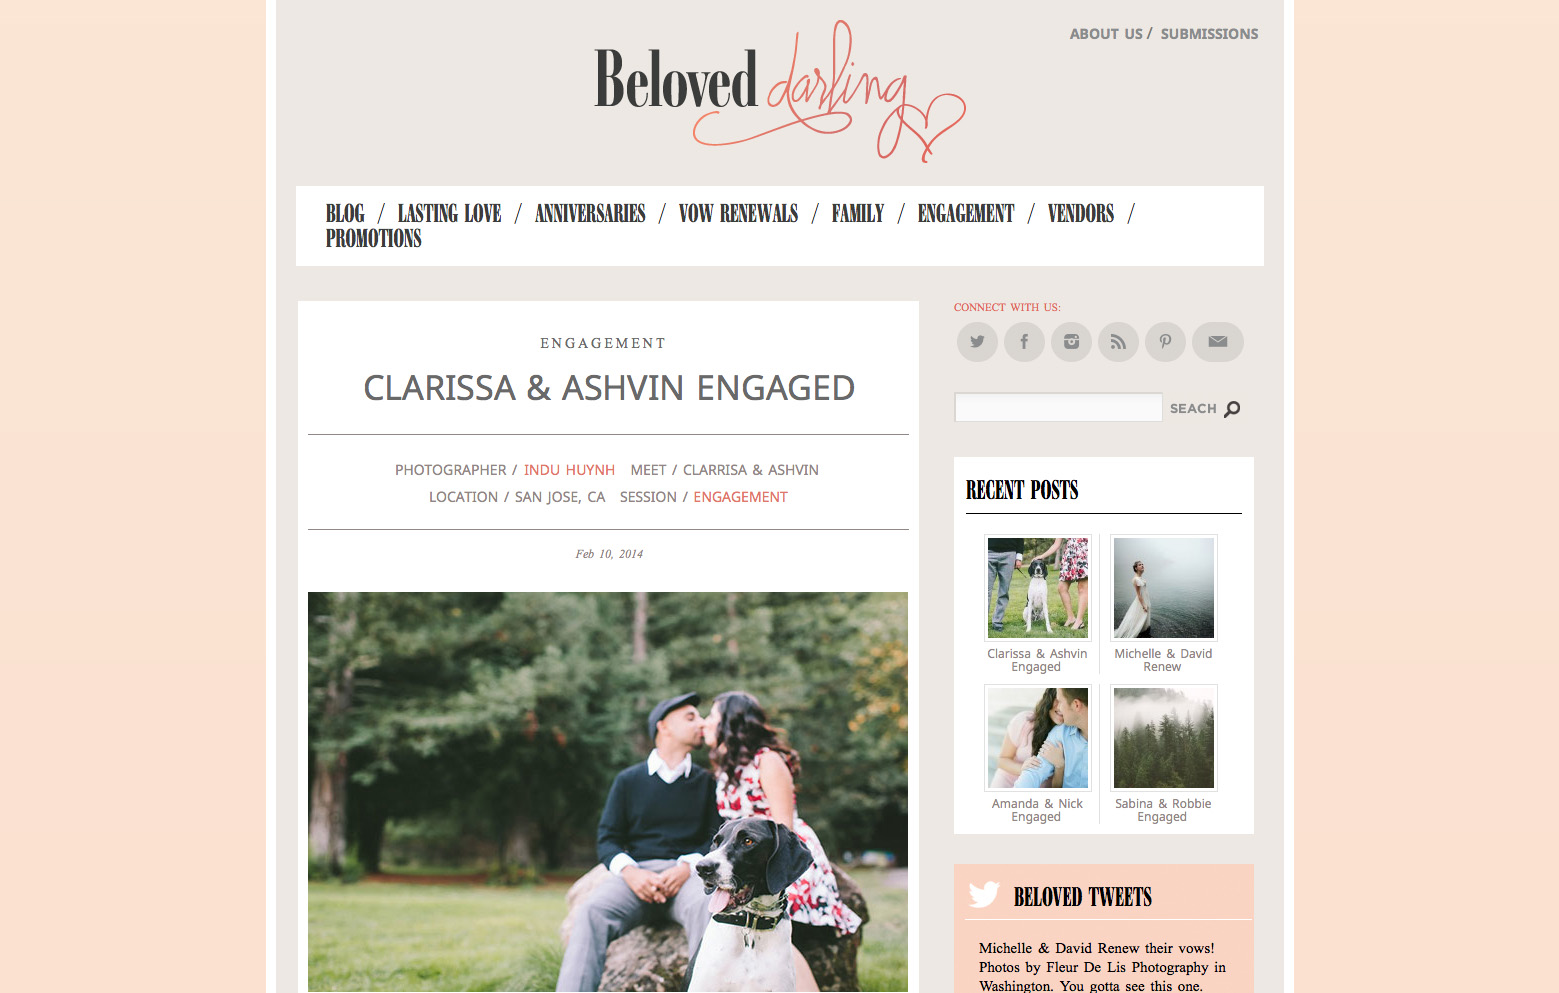 Indu-Huynh-published-engagement-session-beloved-darling